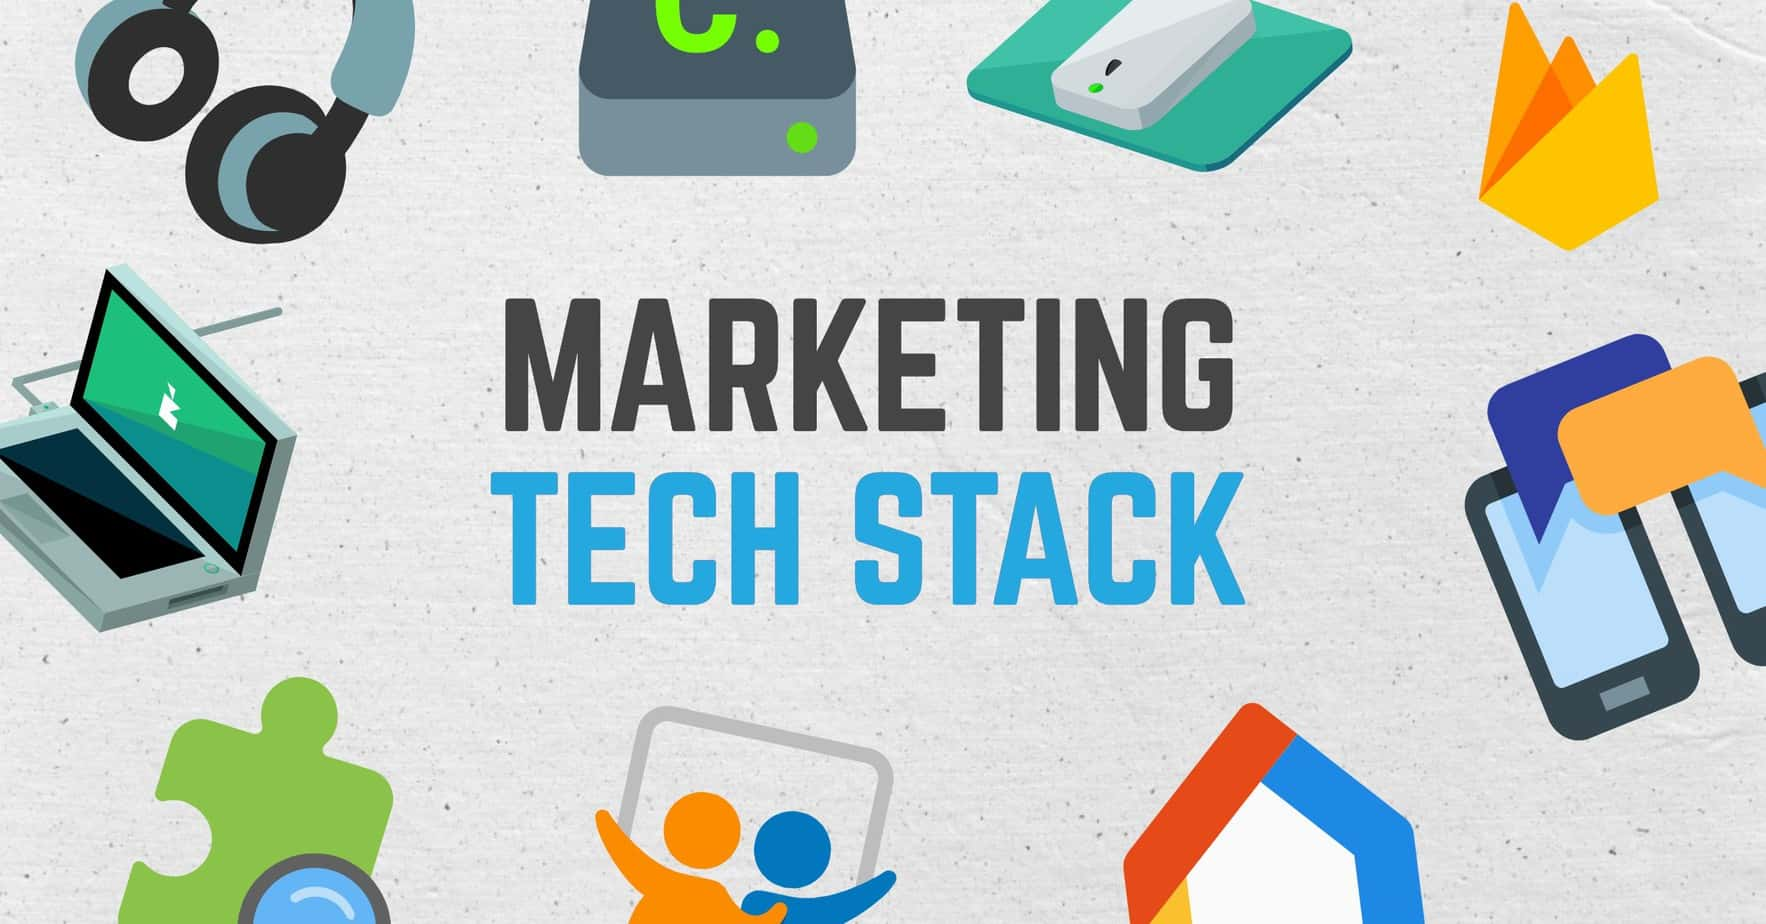 Wekelijkse Marketing Technologie Stack